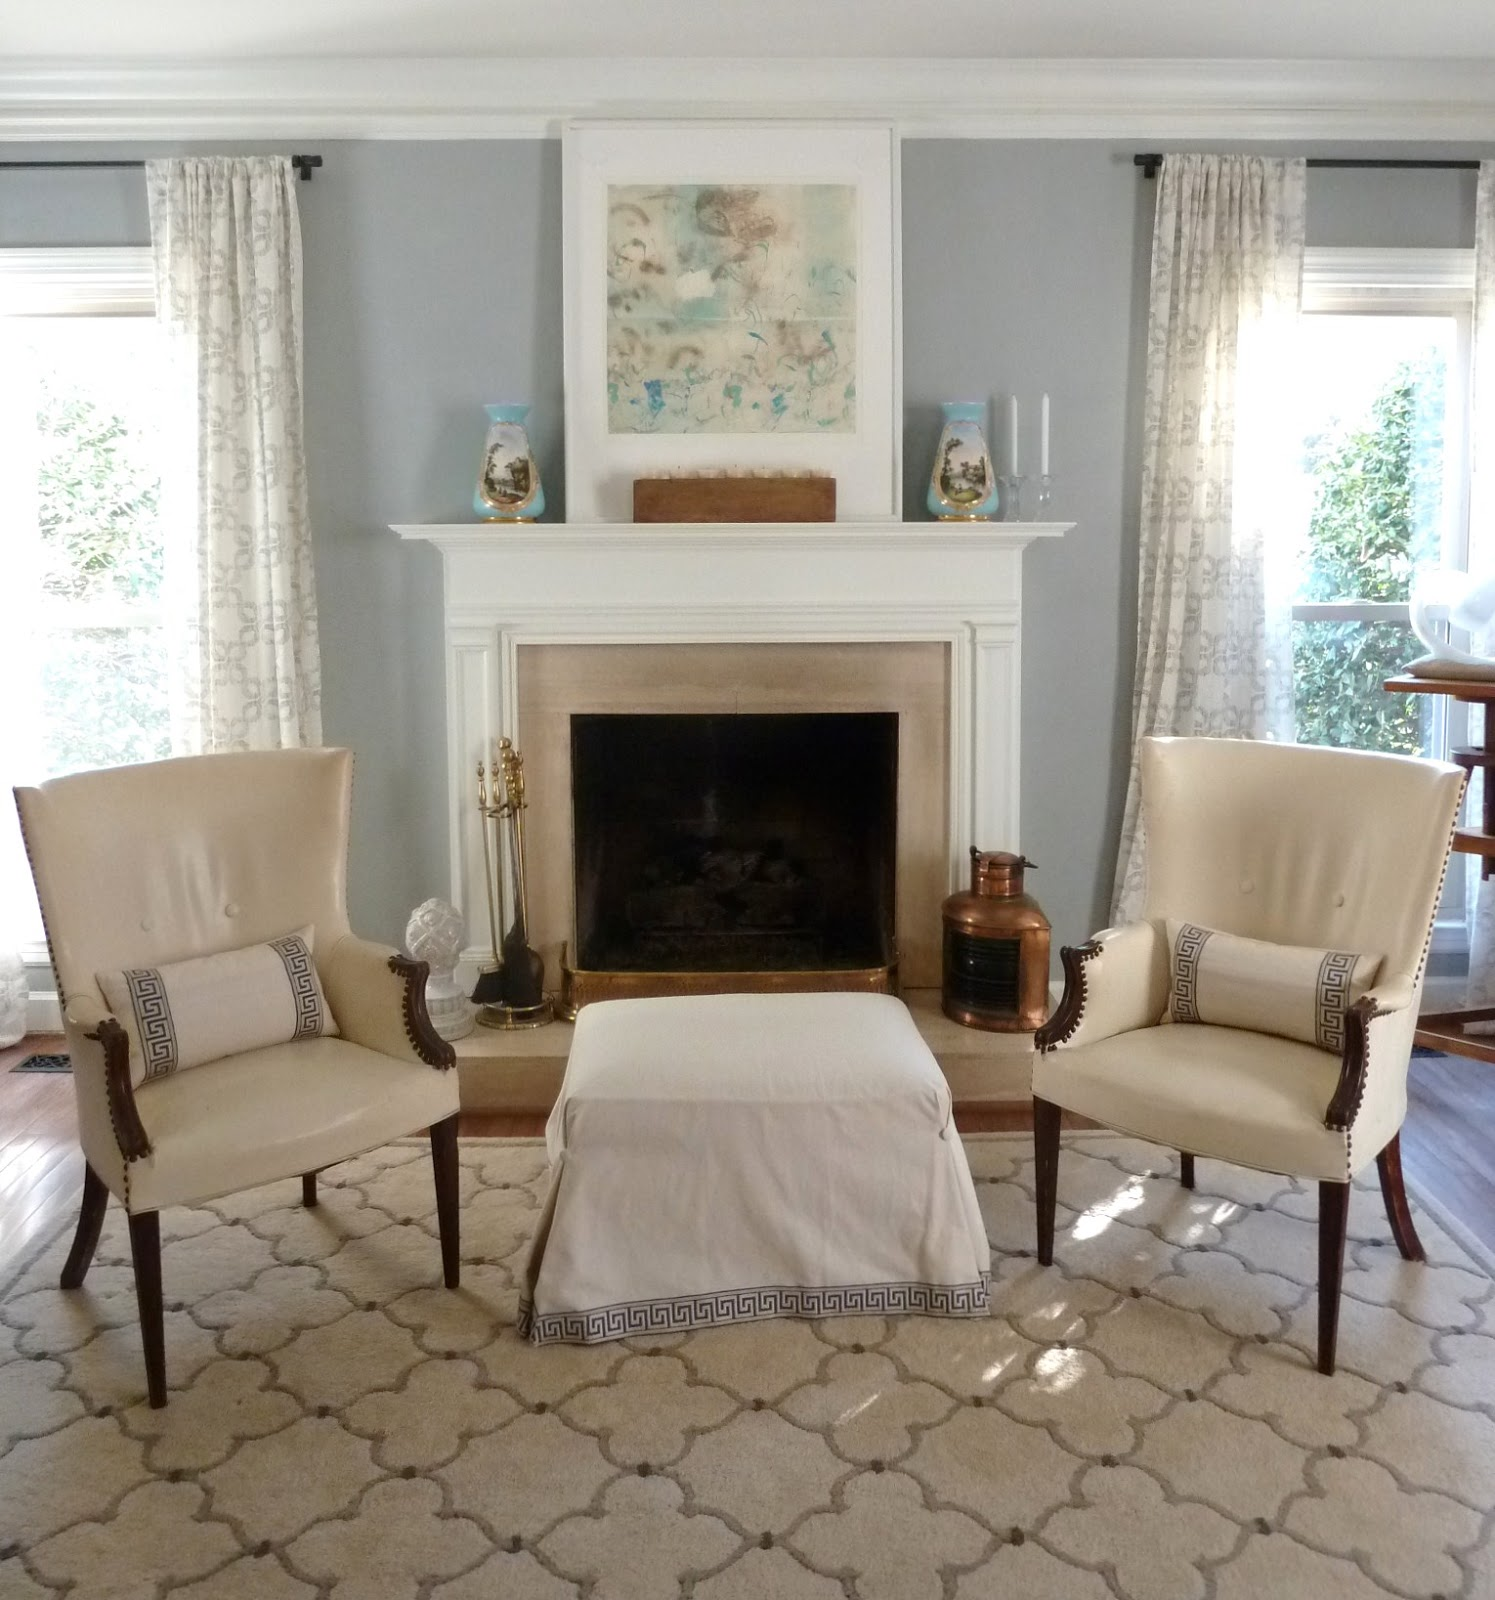 Awesome Design Of The Living Room Paint Color With Grey Wall Added With White Ceiling Ideas Added With White Fireplace Mantels Ideas